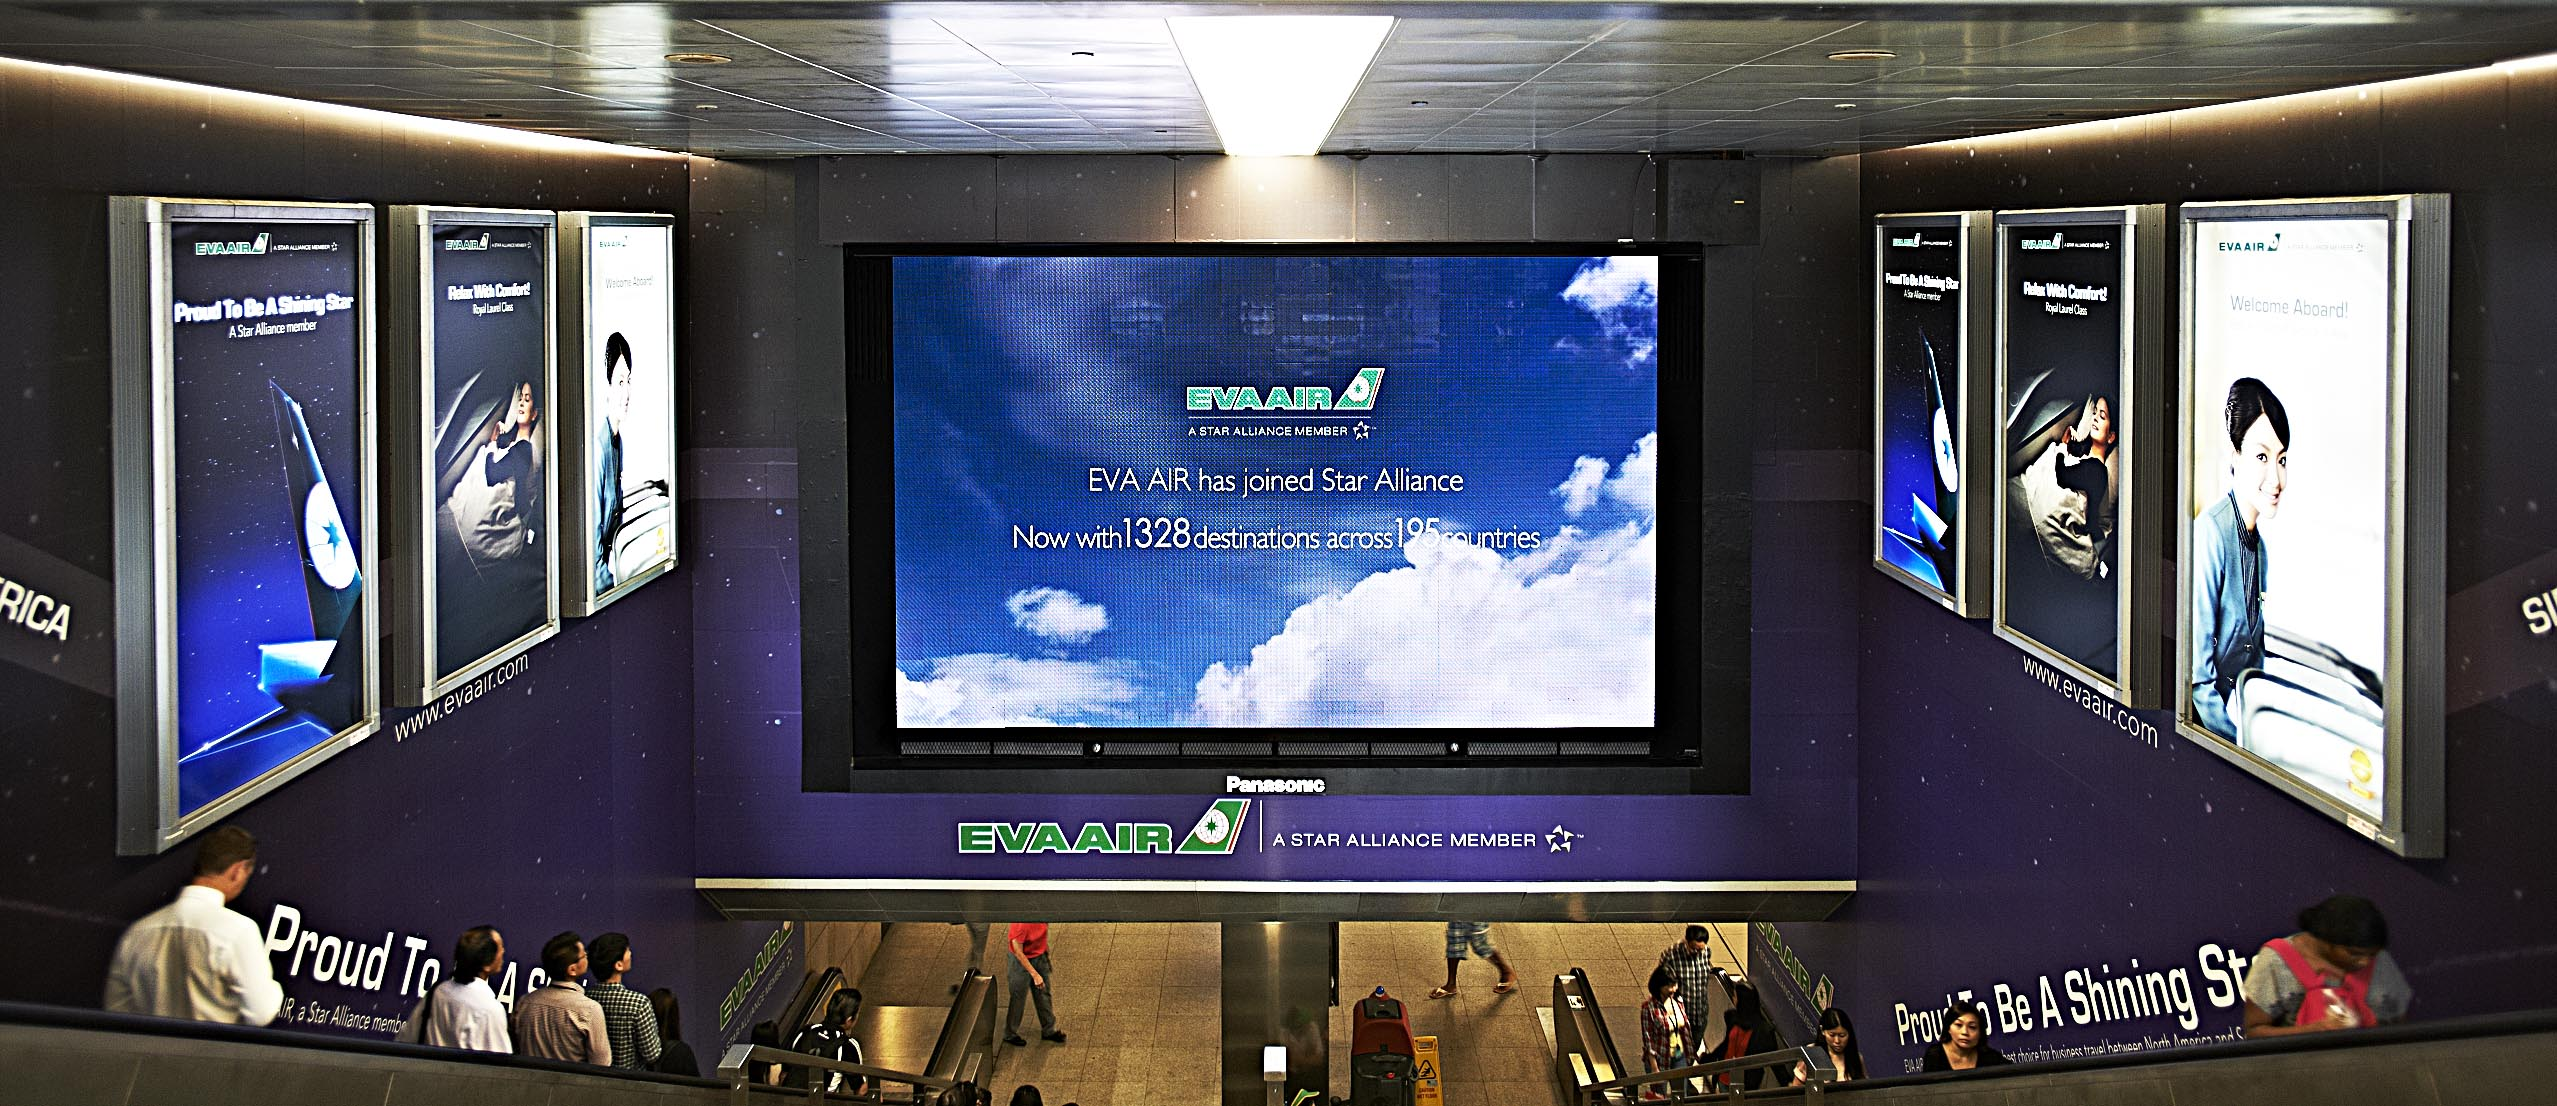 eva air marketing strategy Marketing strategy objectives publix strives to meet the every needs of each individual customer their objective is to match publix's products and services offered with demands from their customers to assure competitive success.